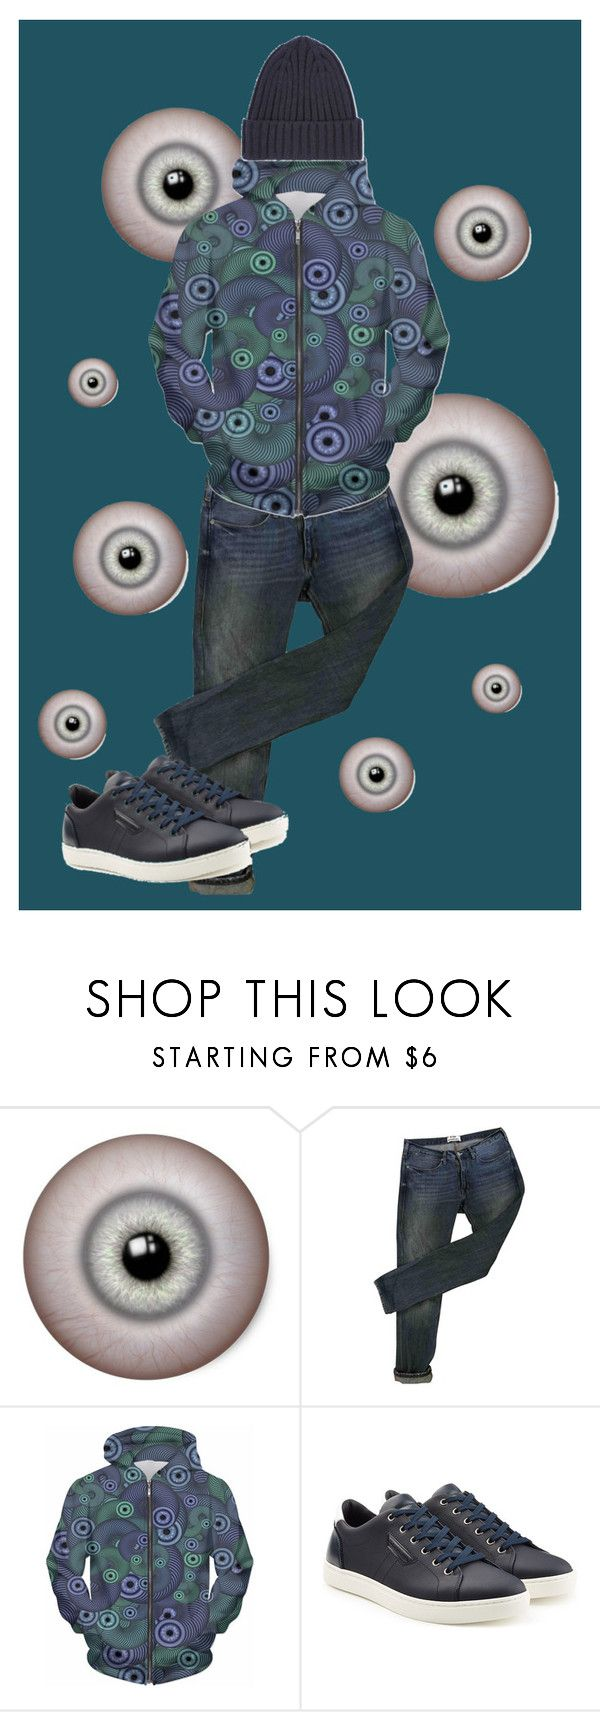 """""""Eyeball Skinky Hoodie"""" by helen-designs ❤ liked on Polyvore featuring Acne Studios, Dolce&Gabbana, Uniqlo, men's fashion and menswear"""